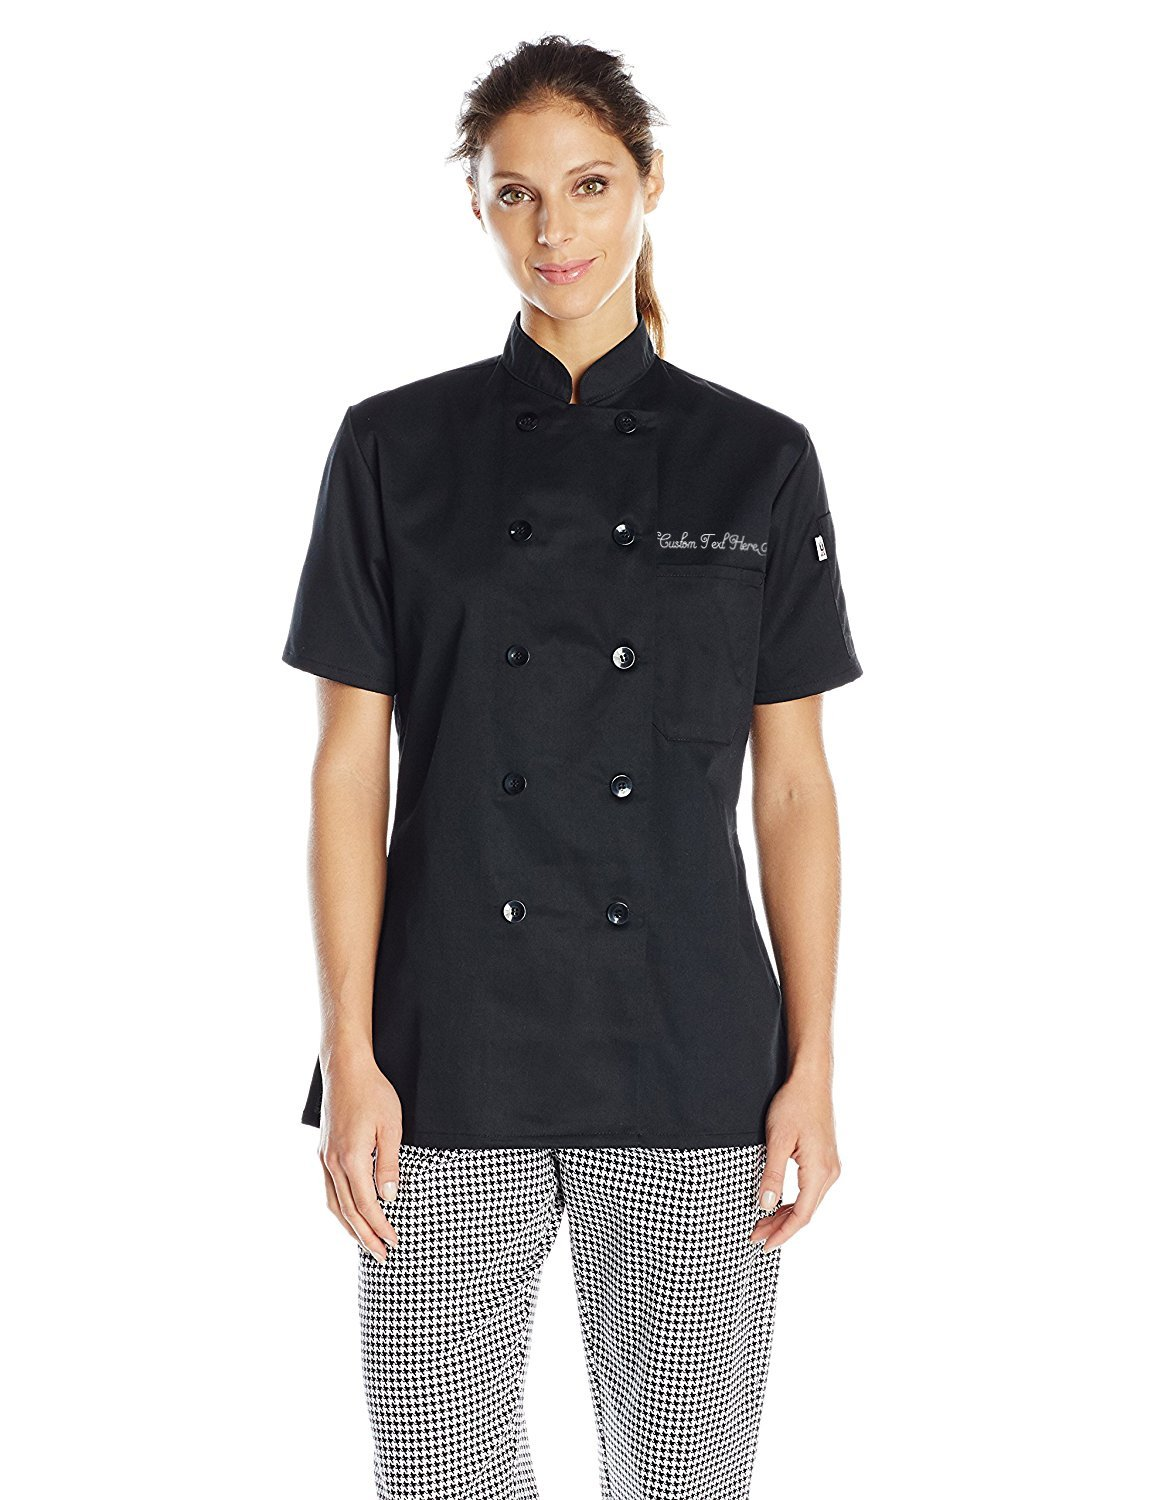 Uncommon Threads Women's Tahoe Fit Chef Coat with Custom Text, Black, X-Large by KAMAL OHAVA (Image #1)